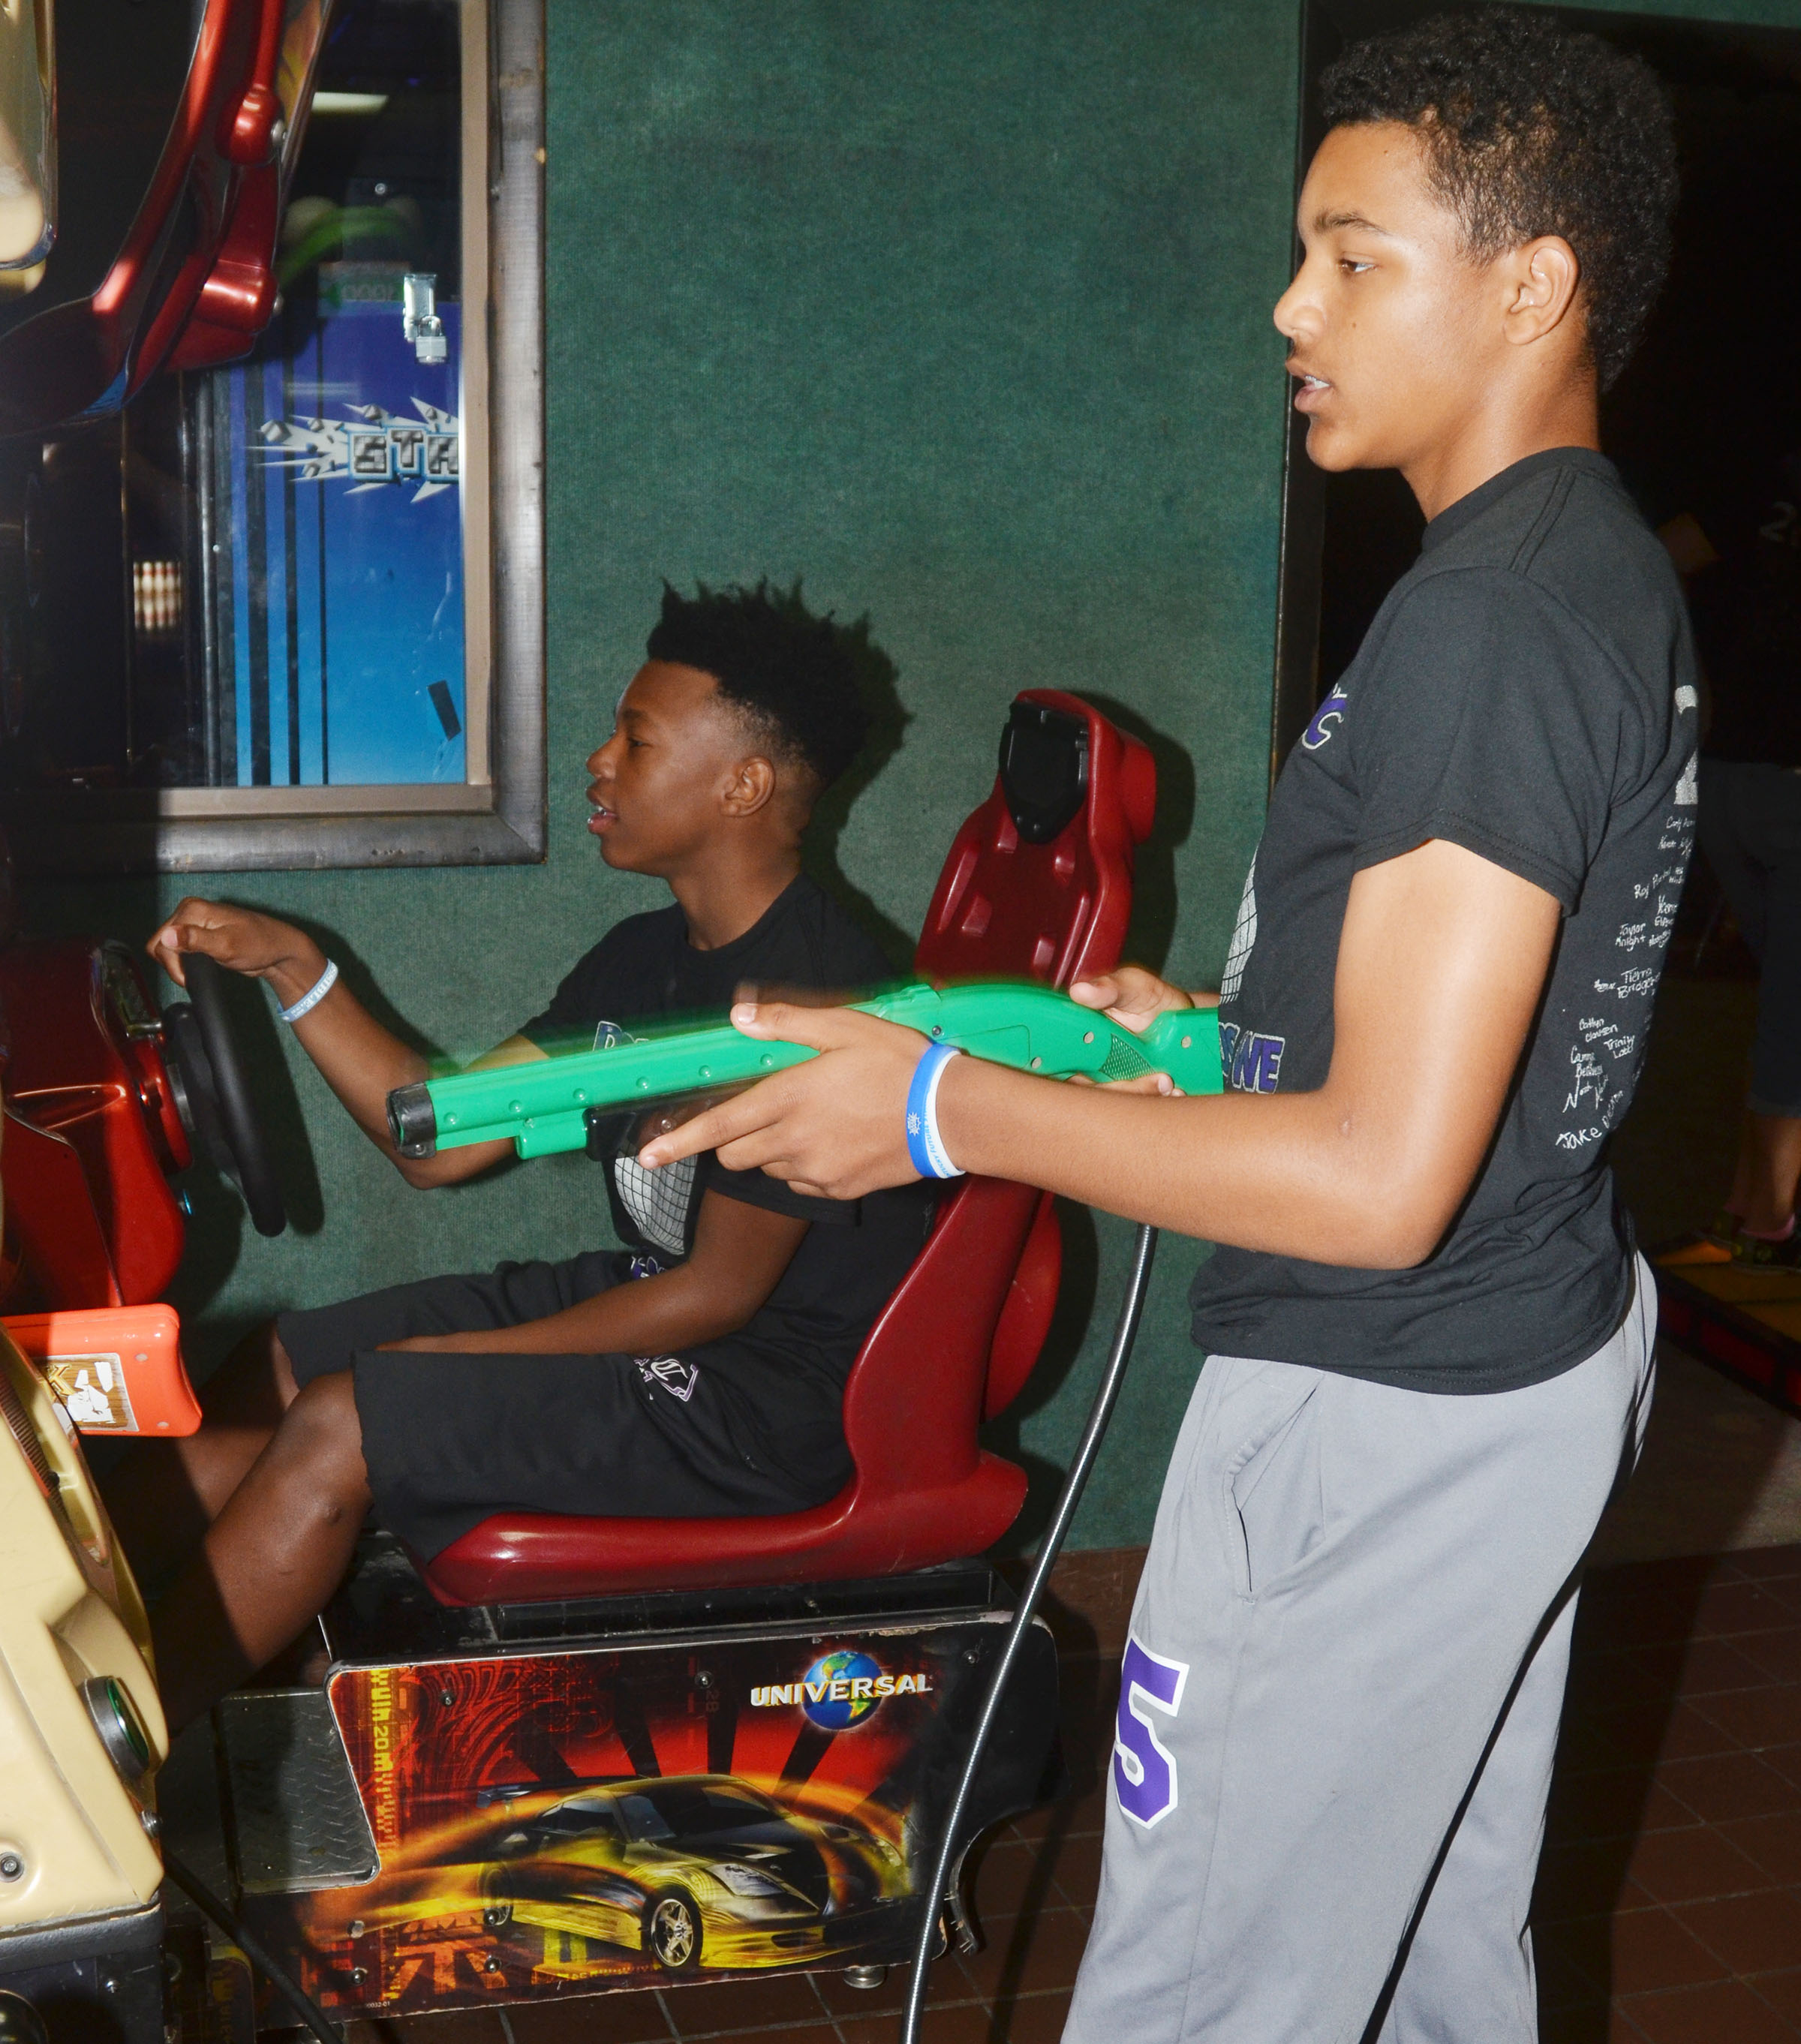 CMS eighth-graders Sae'von Buckner, at left, and Reggie Thomas play games.